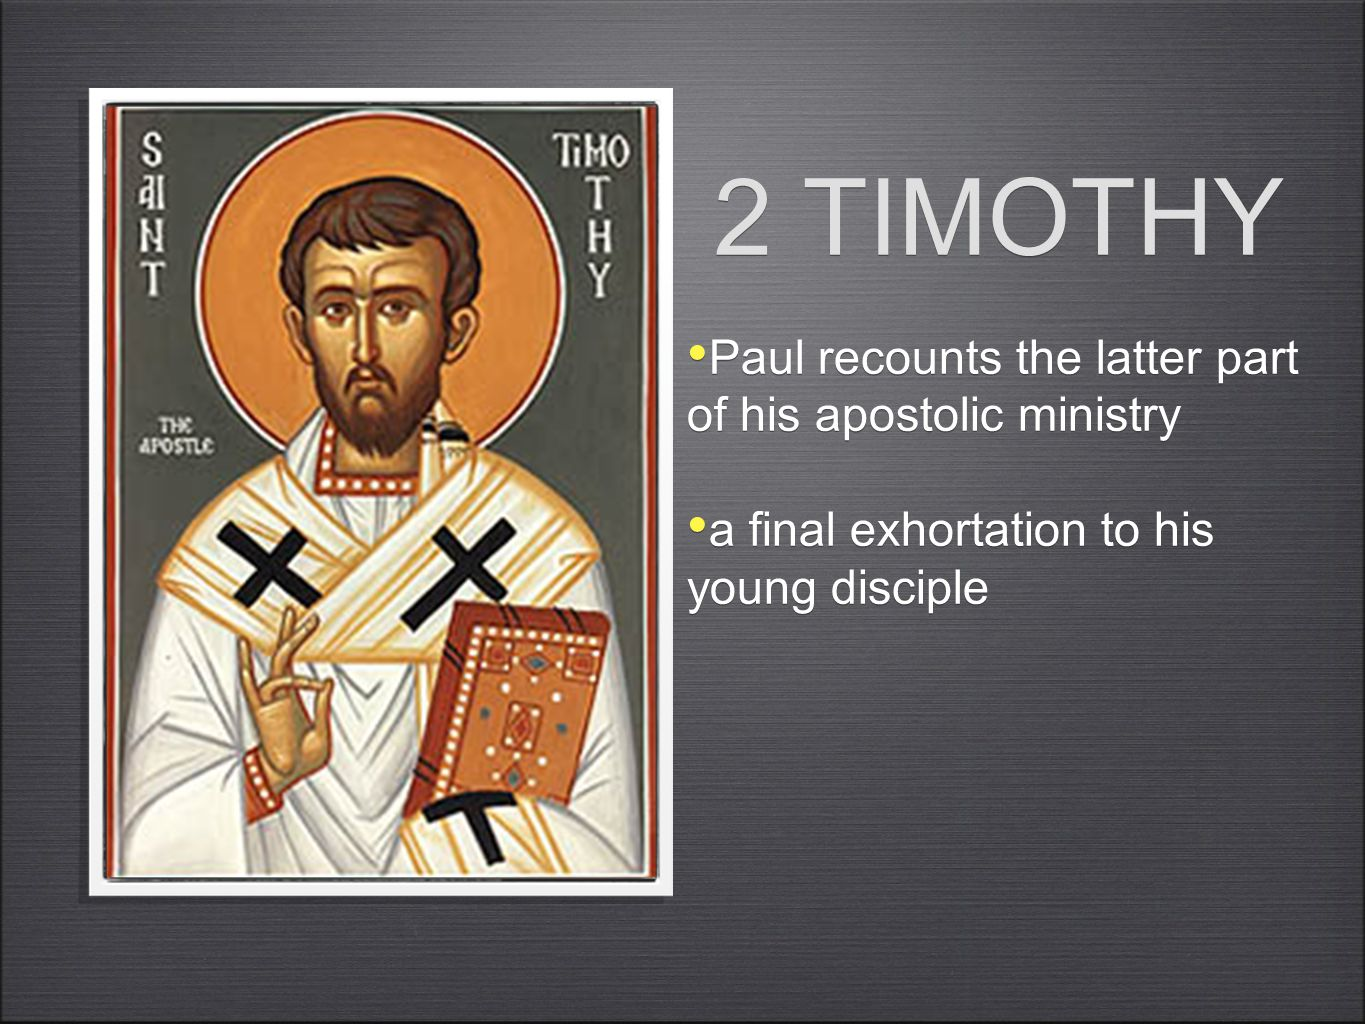 2 TIMOTHY Paul recounts the latter part of his apostolic ministry a final exhortation to his young disciple Paul recounts the latter part of his apostolic ministry a final exhortation to his young disciple